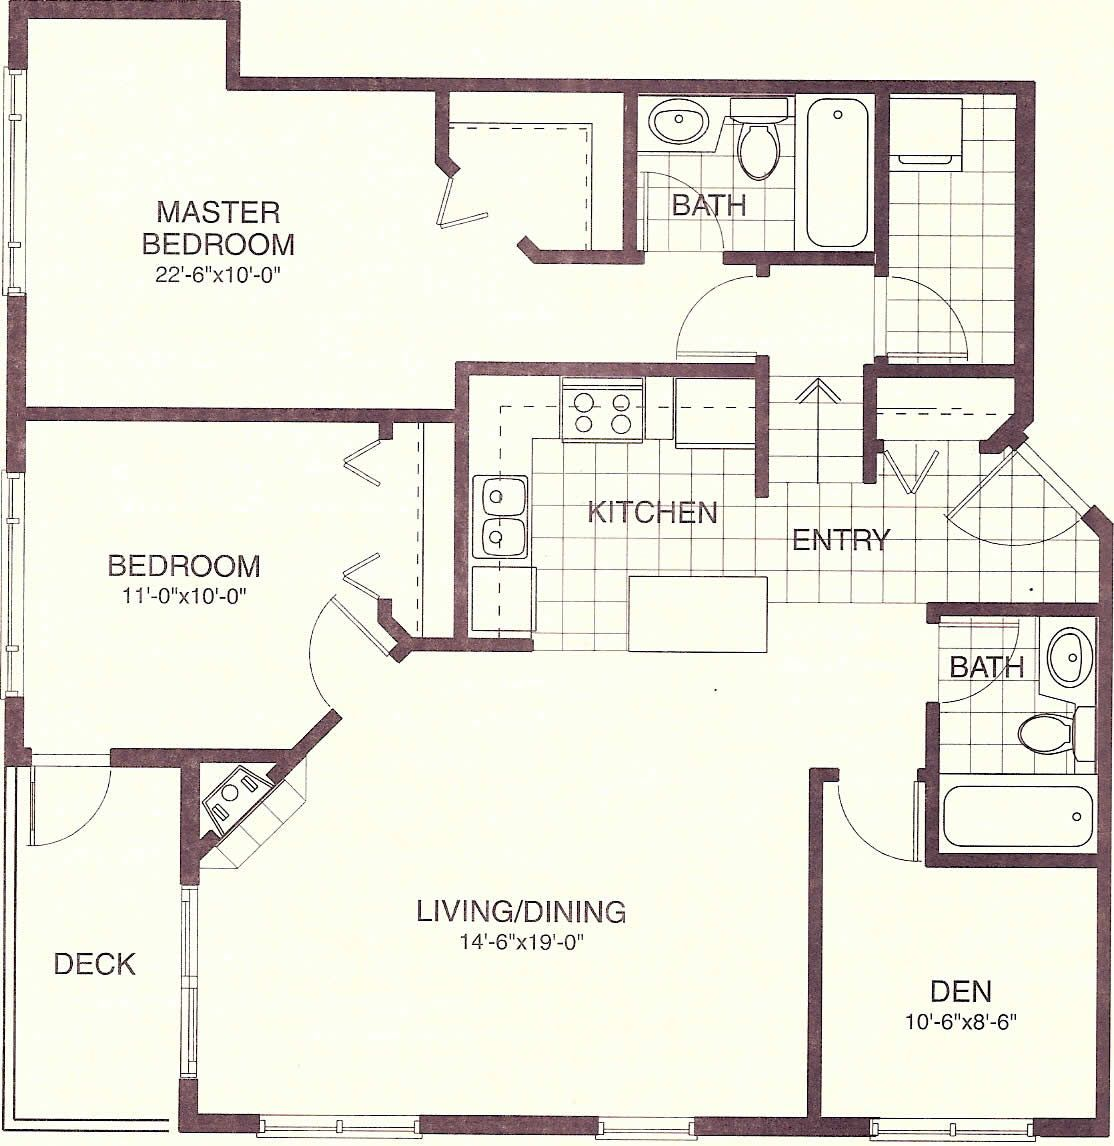 House Plans 900 Sq Ft 2017 And Home Design Ideas